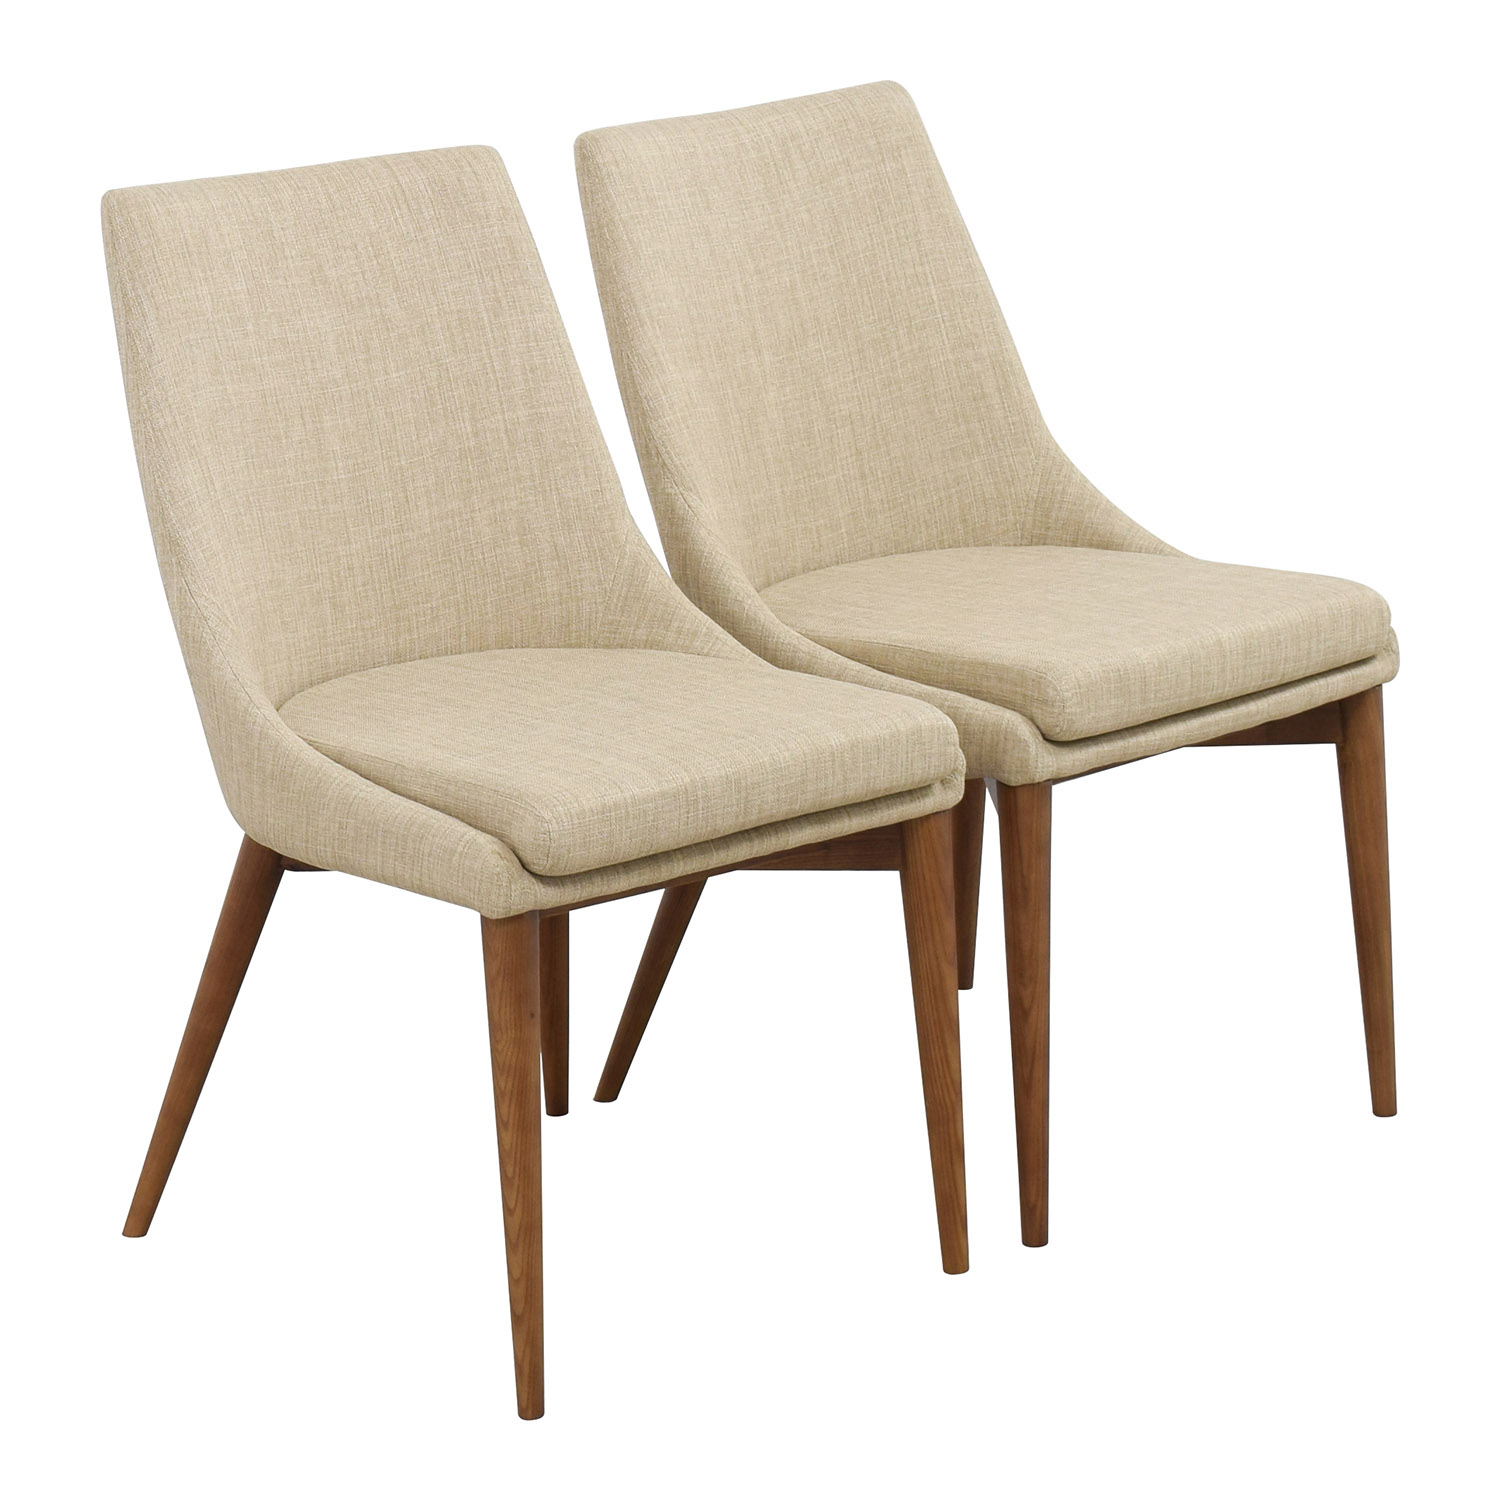 Captivating ... InMod InMod Beige Calais Side Chairs Second Hand ...